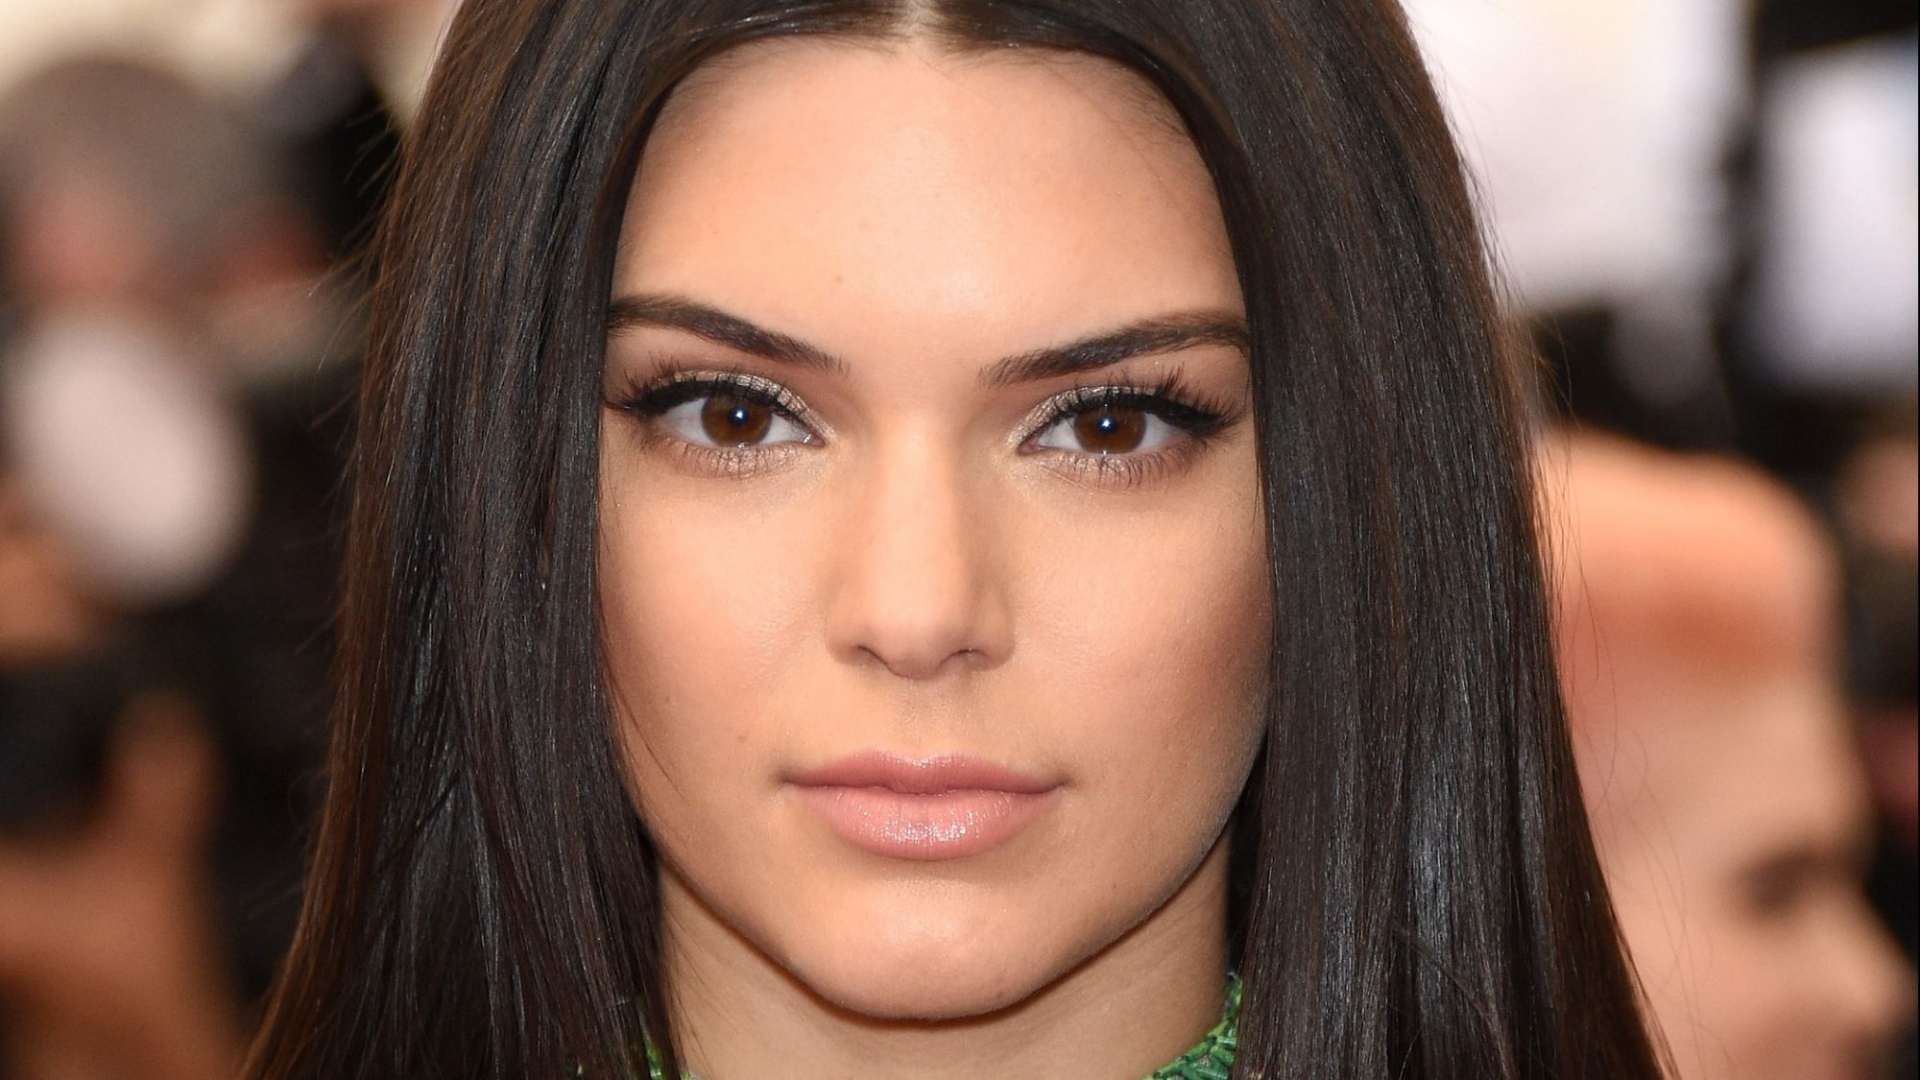 kendall-jenner-straight-hair-brown-eyes-attractive-1920%C3%971080-wallpaper-wp3407738